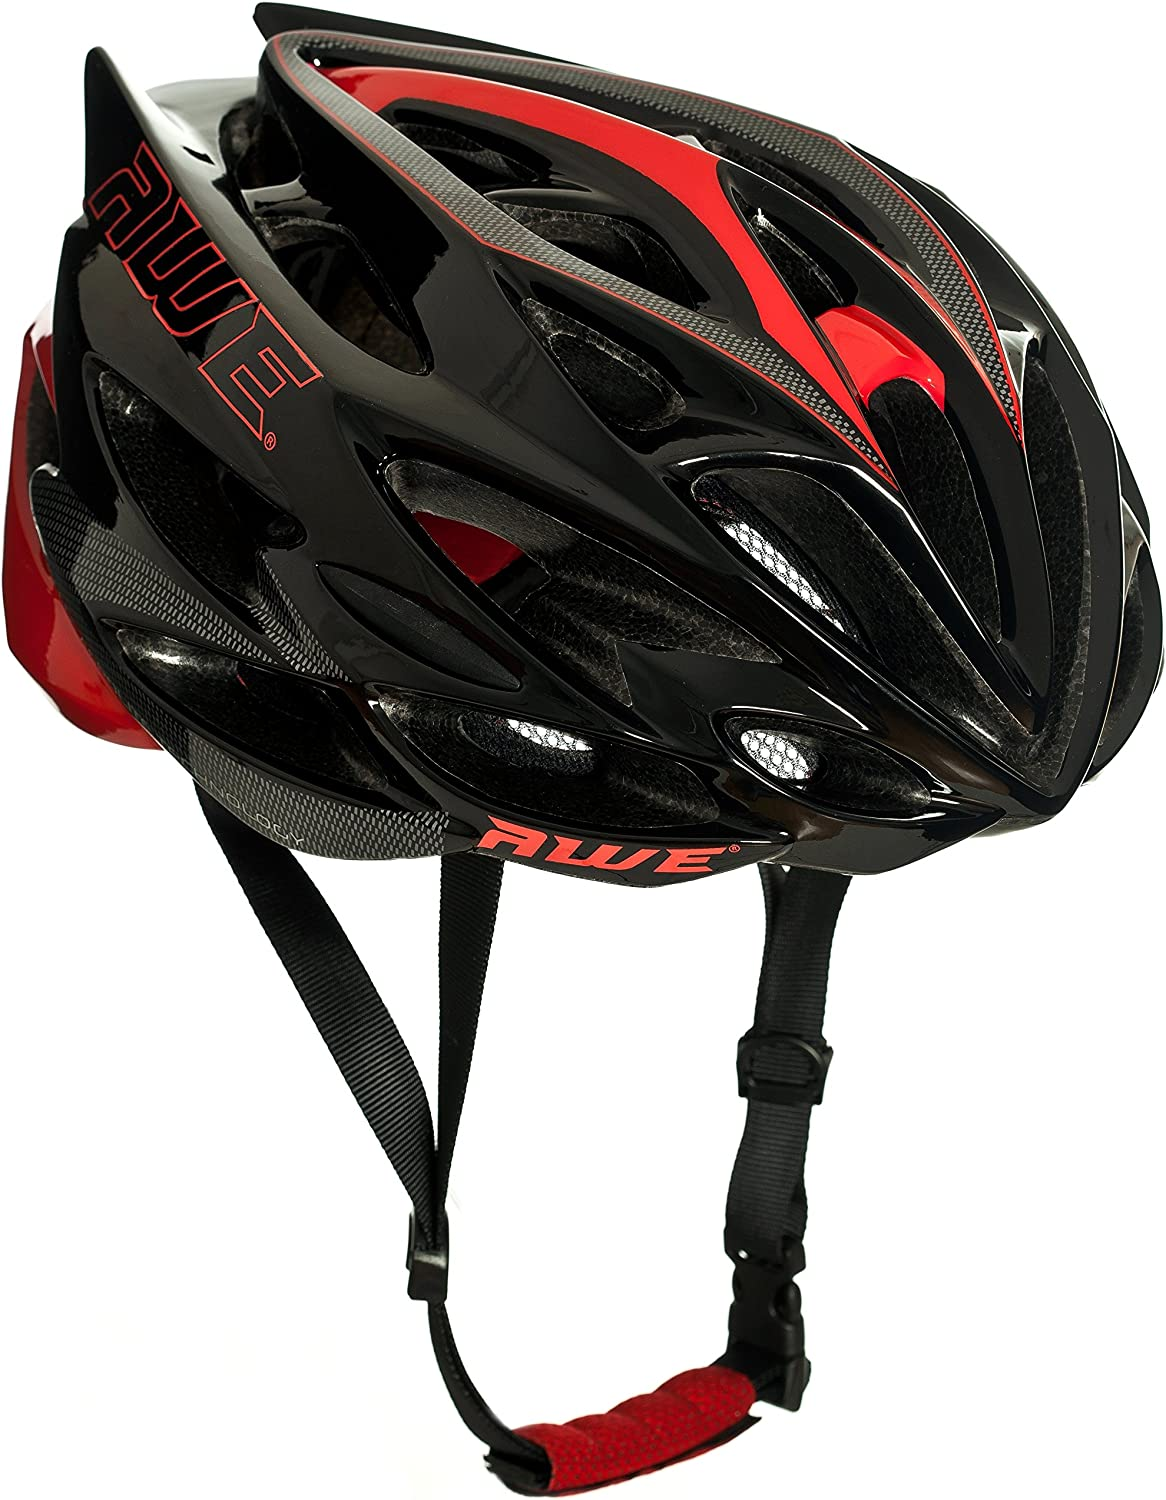 AWE AWESpeed FREE 5 YEAR CRASH REPLACEMENT In Mould Adult Mens Road Cycling Helmet Large Black Red Carbon US CPSC Standards 16 CFR 1203 Safety Tested